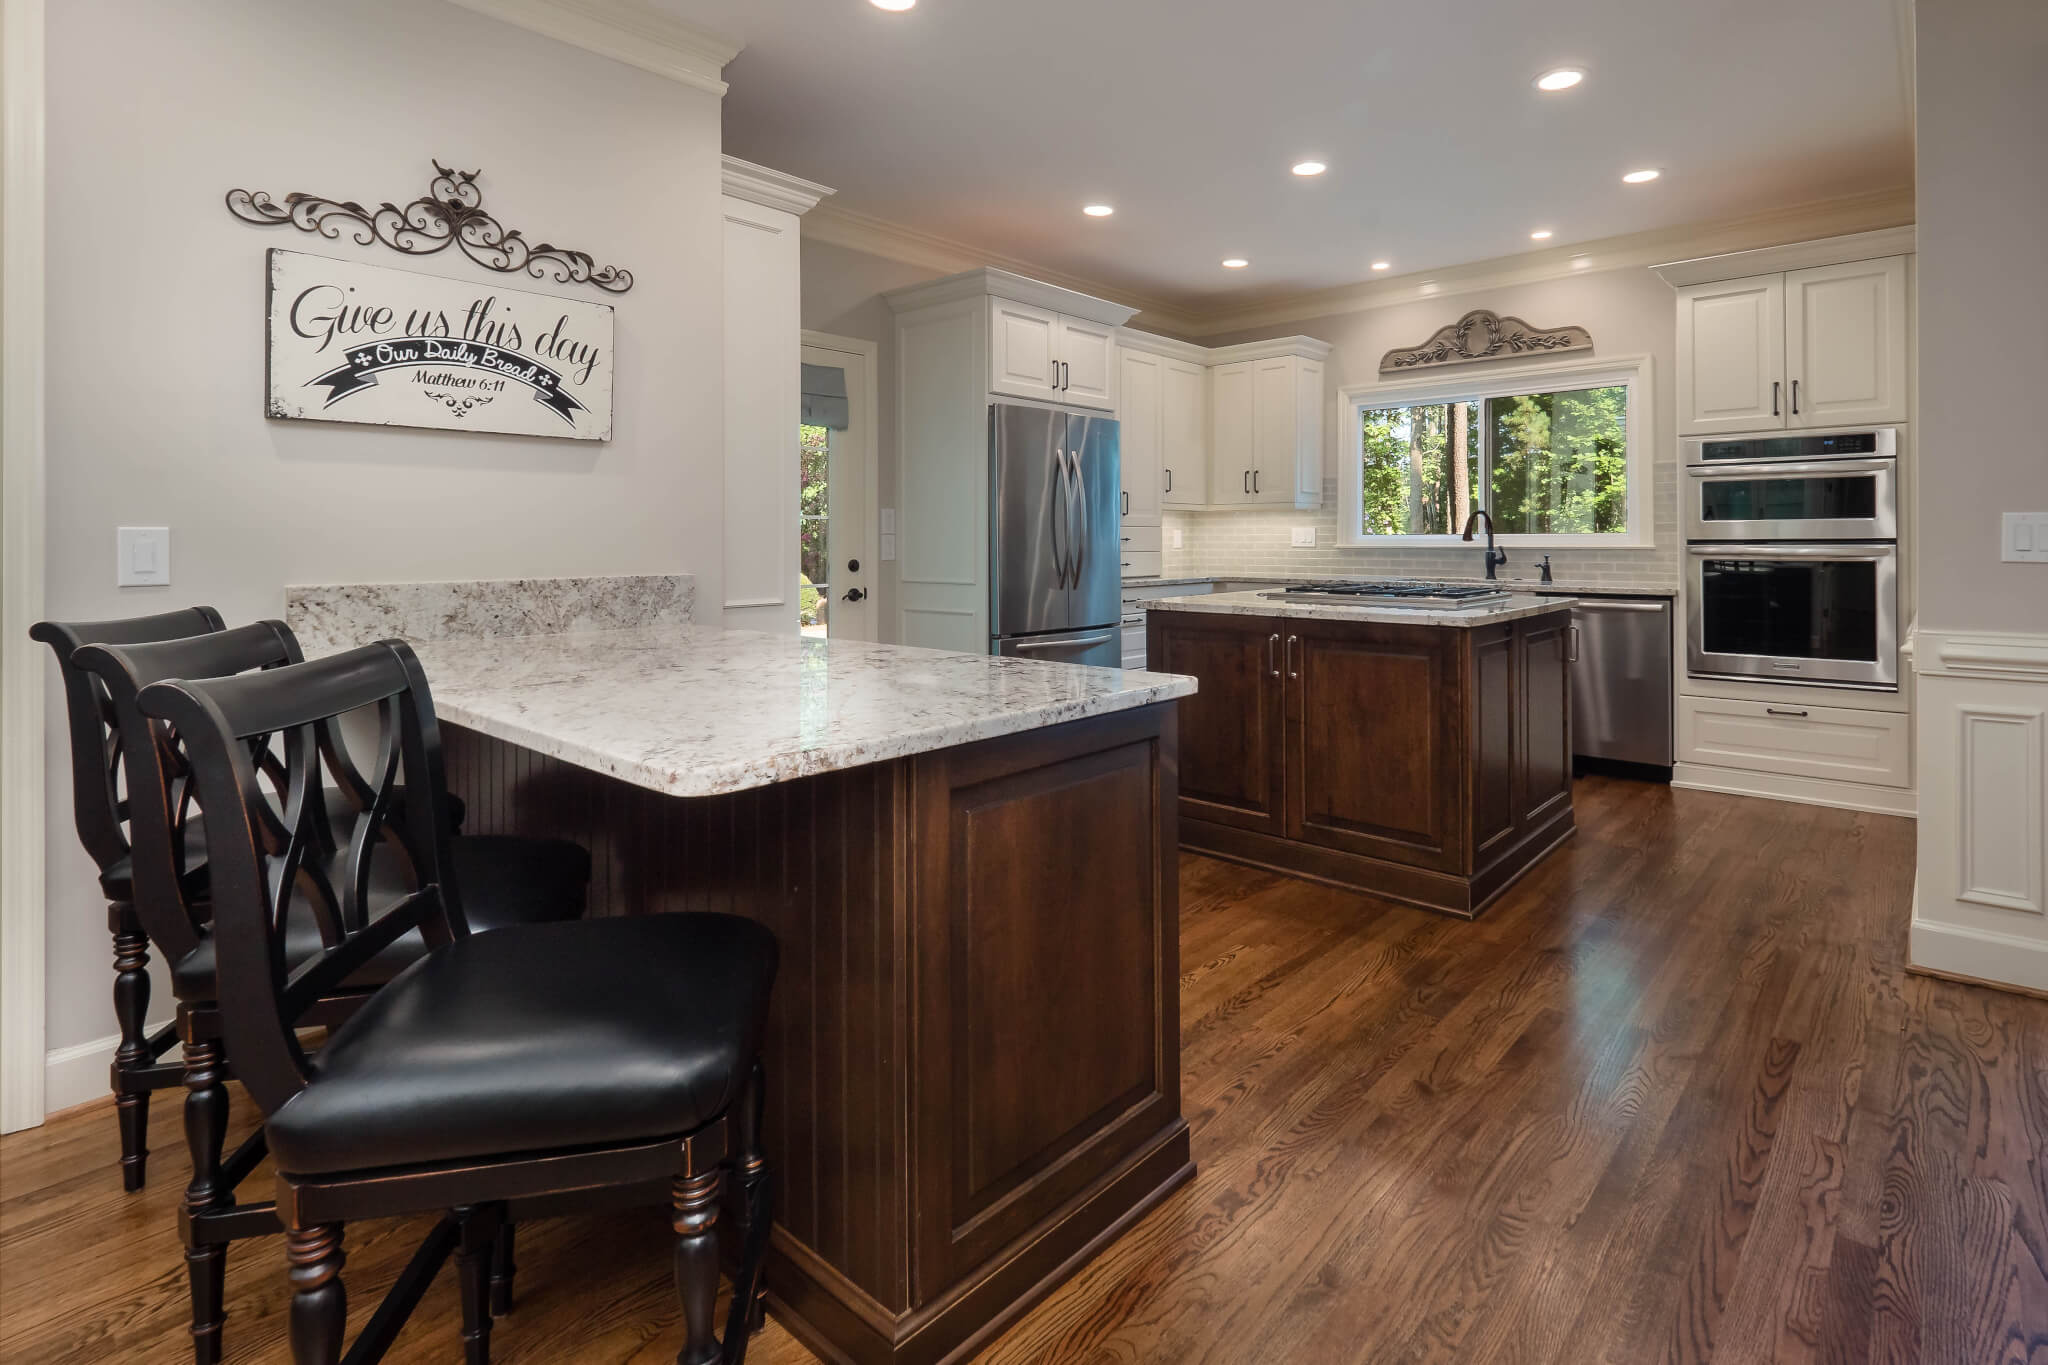 Even before closing on the house we started designing the new floor plan the kitchen was very dark and the u shape layout made it seem crowded and